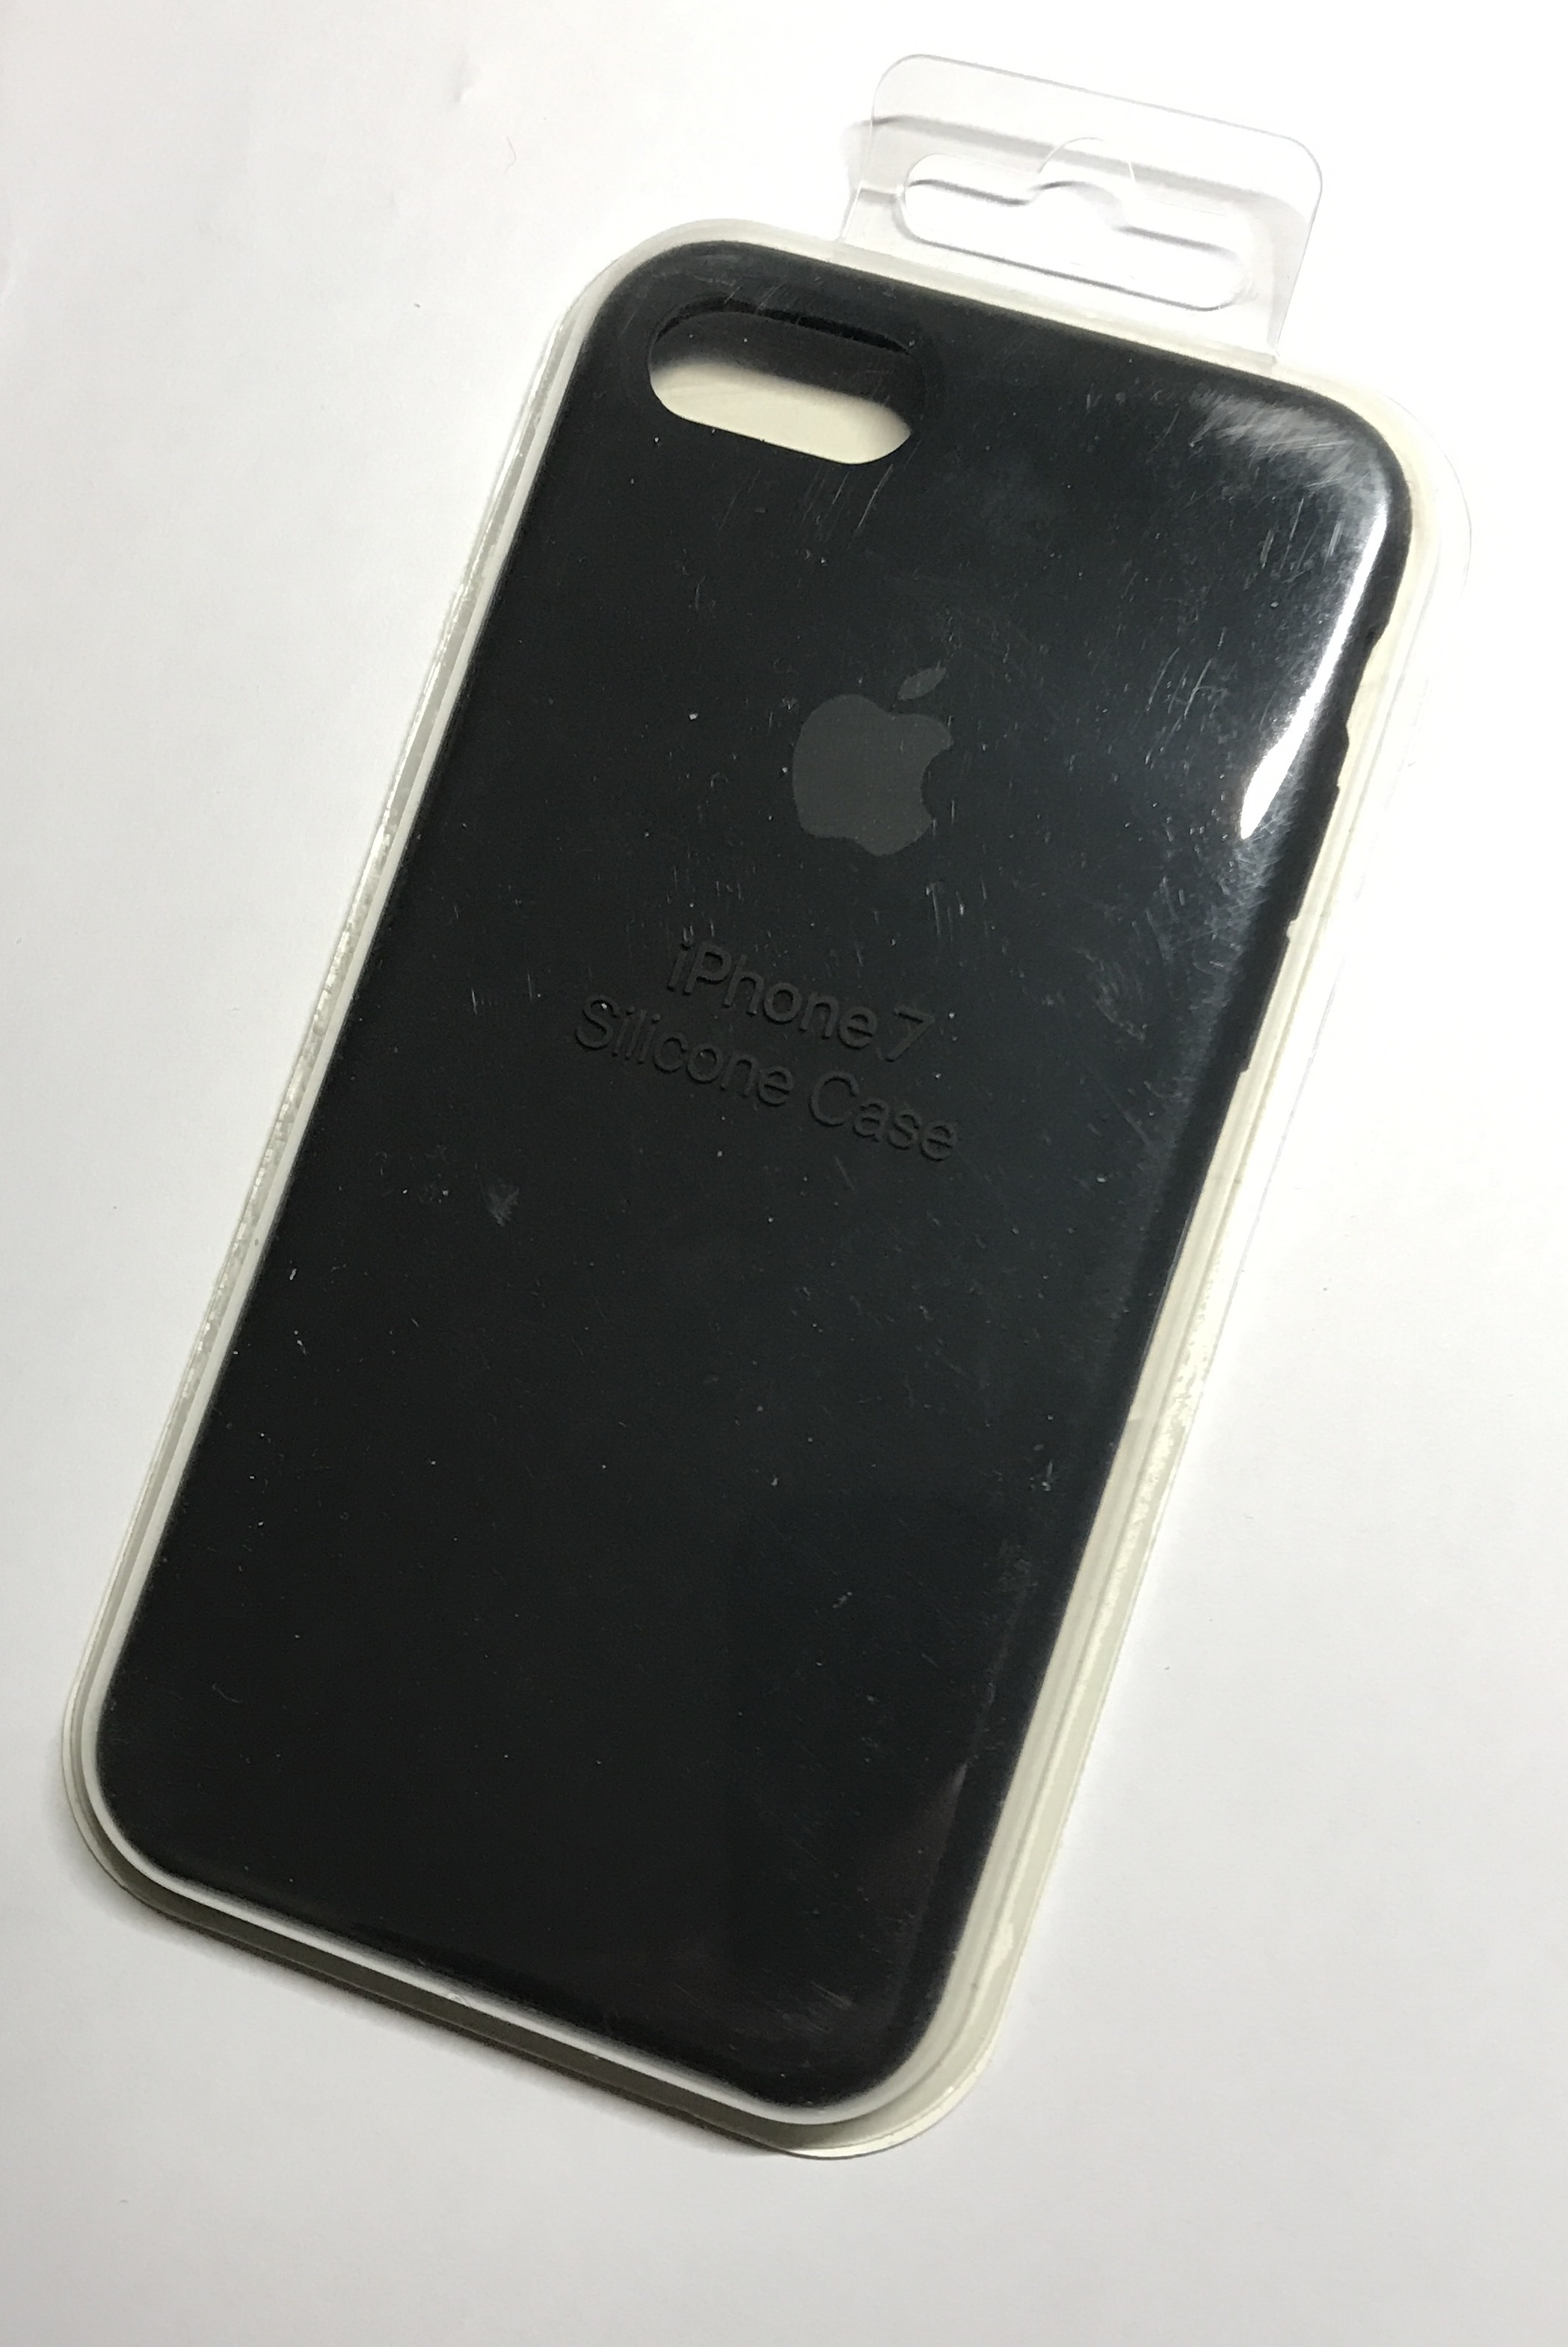 Genuine or fake silicon case for iPhone 7 - Apple Community